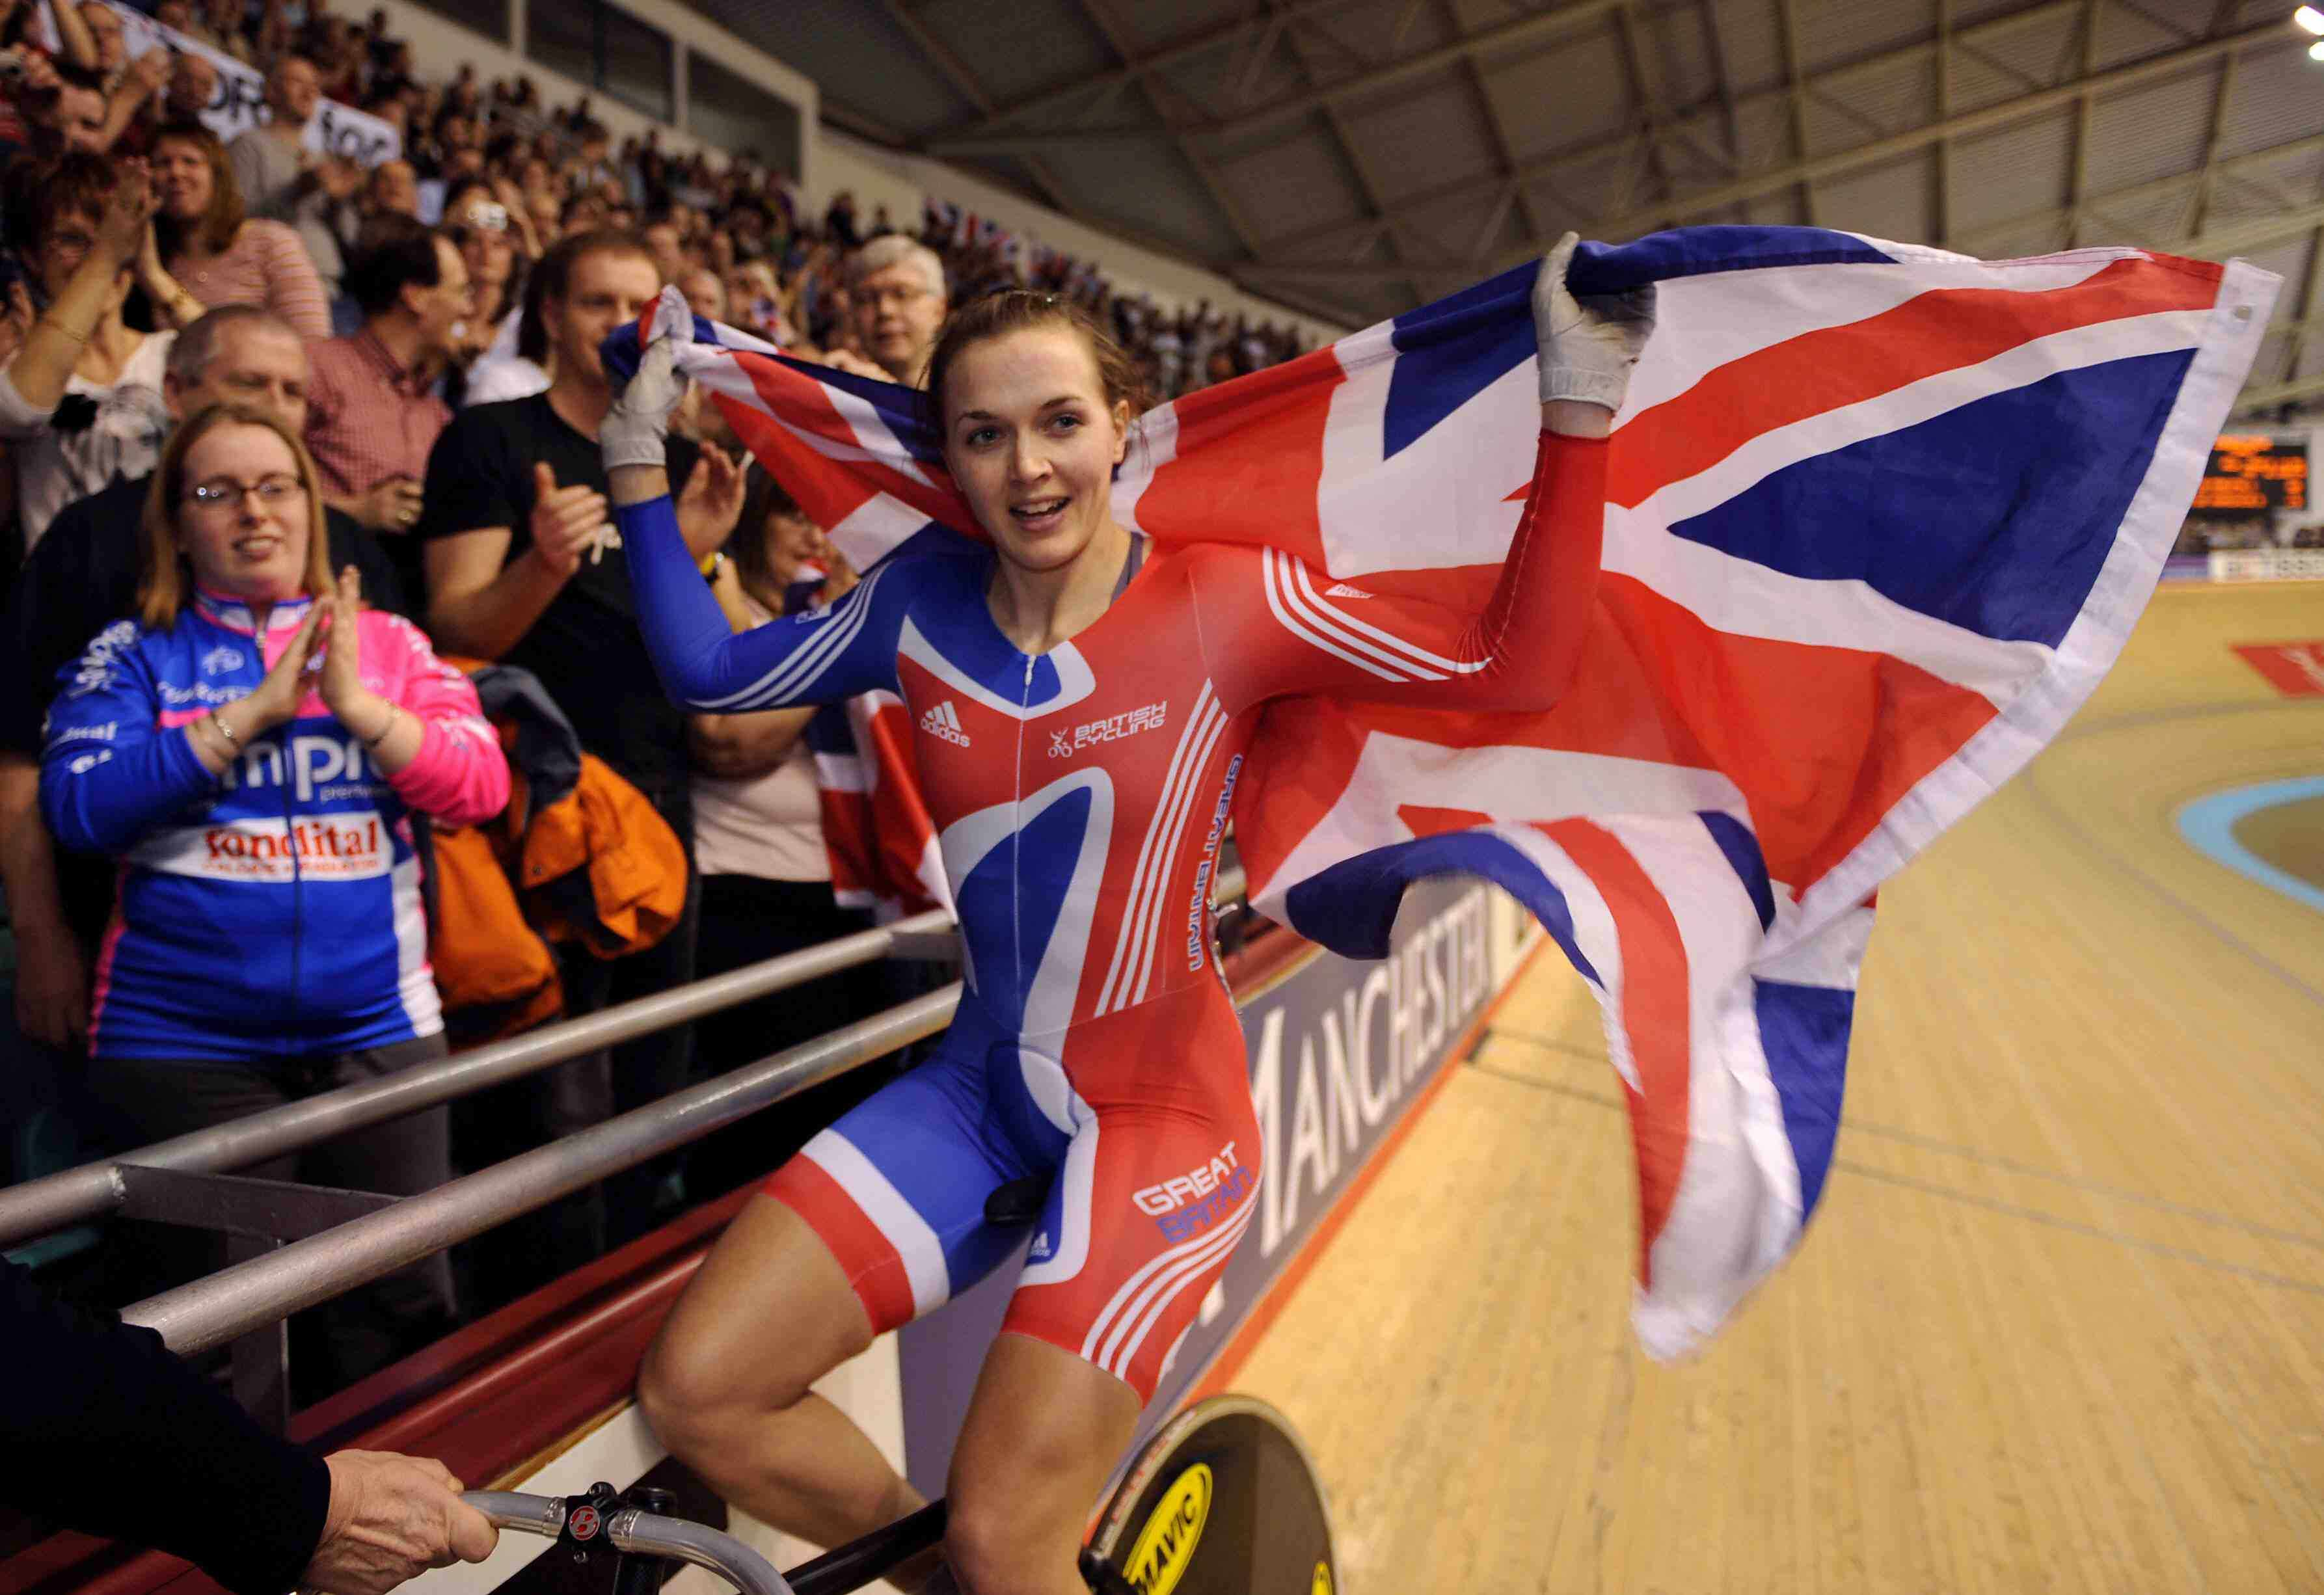 Will there be much flag waving in Beijing for Great Britain? Victoria Pendleton hopes so.